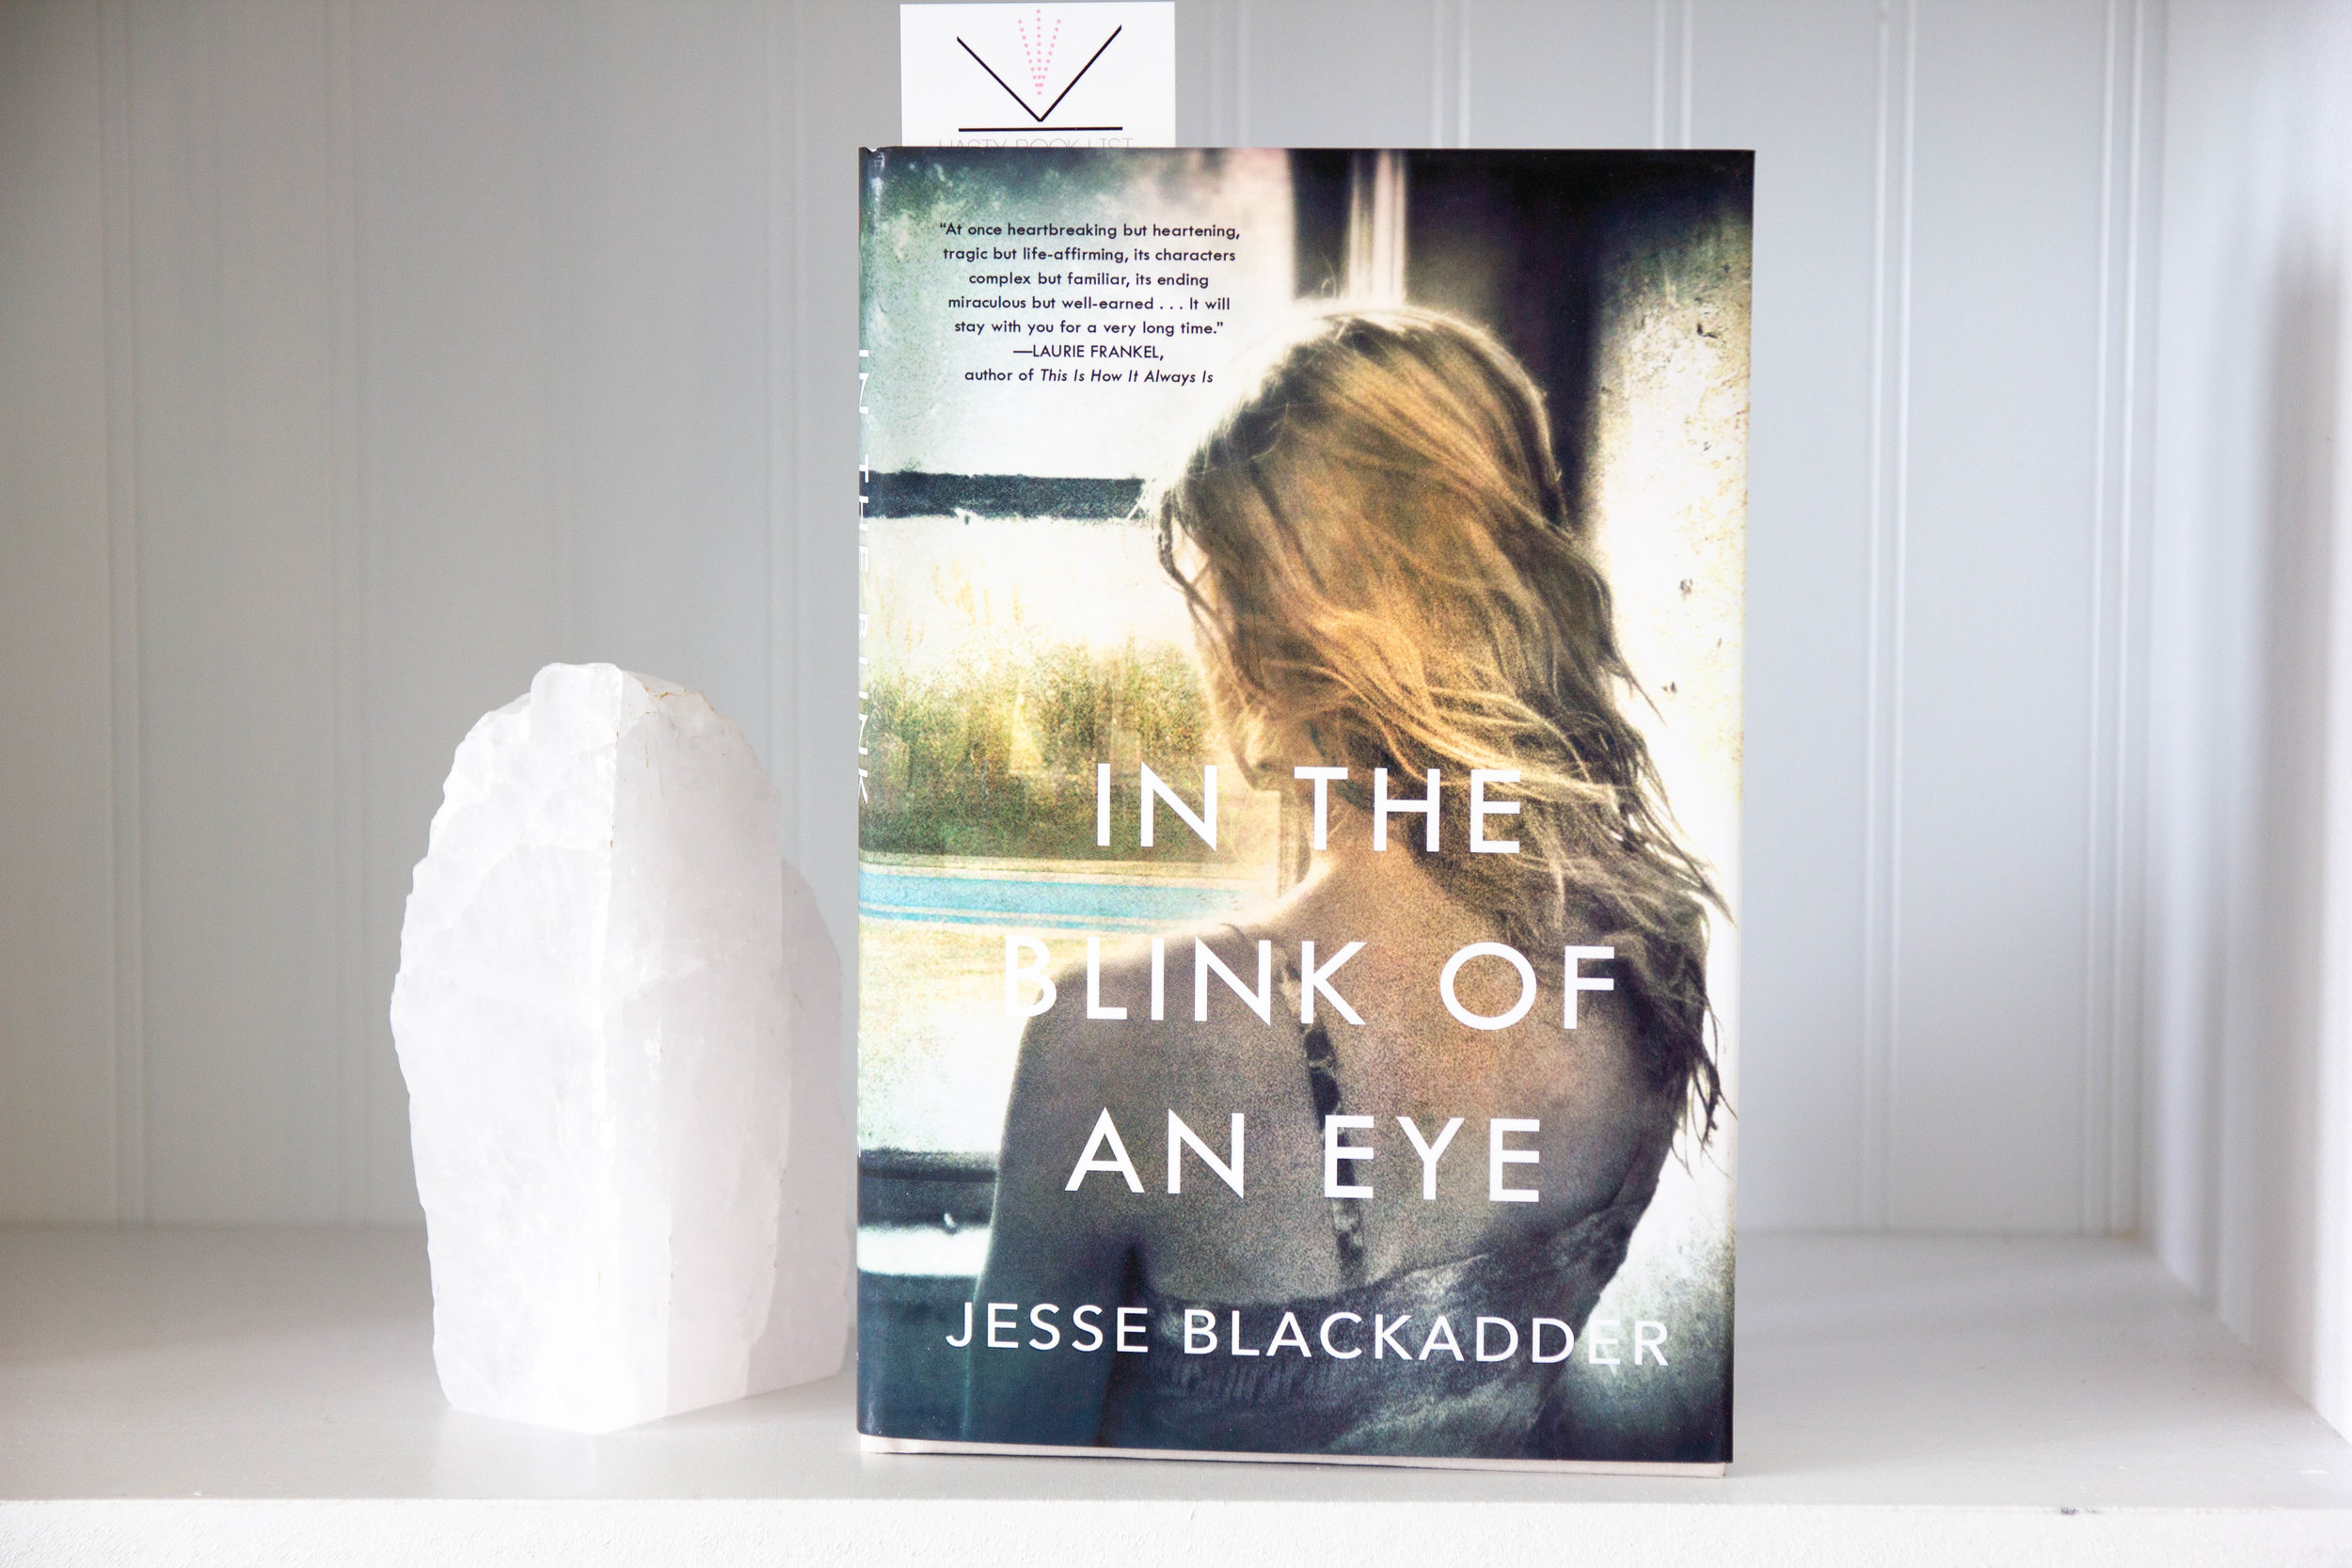 In the Blink of an Eye by Jesse Blackadder - award-winning author Jesse Blackadder's deeply emotional drama that explores a family's path to forgiveness and redemption in the aftermath of a tragedy.